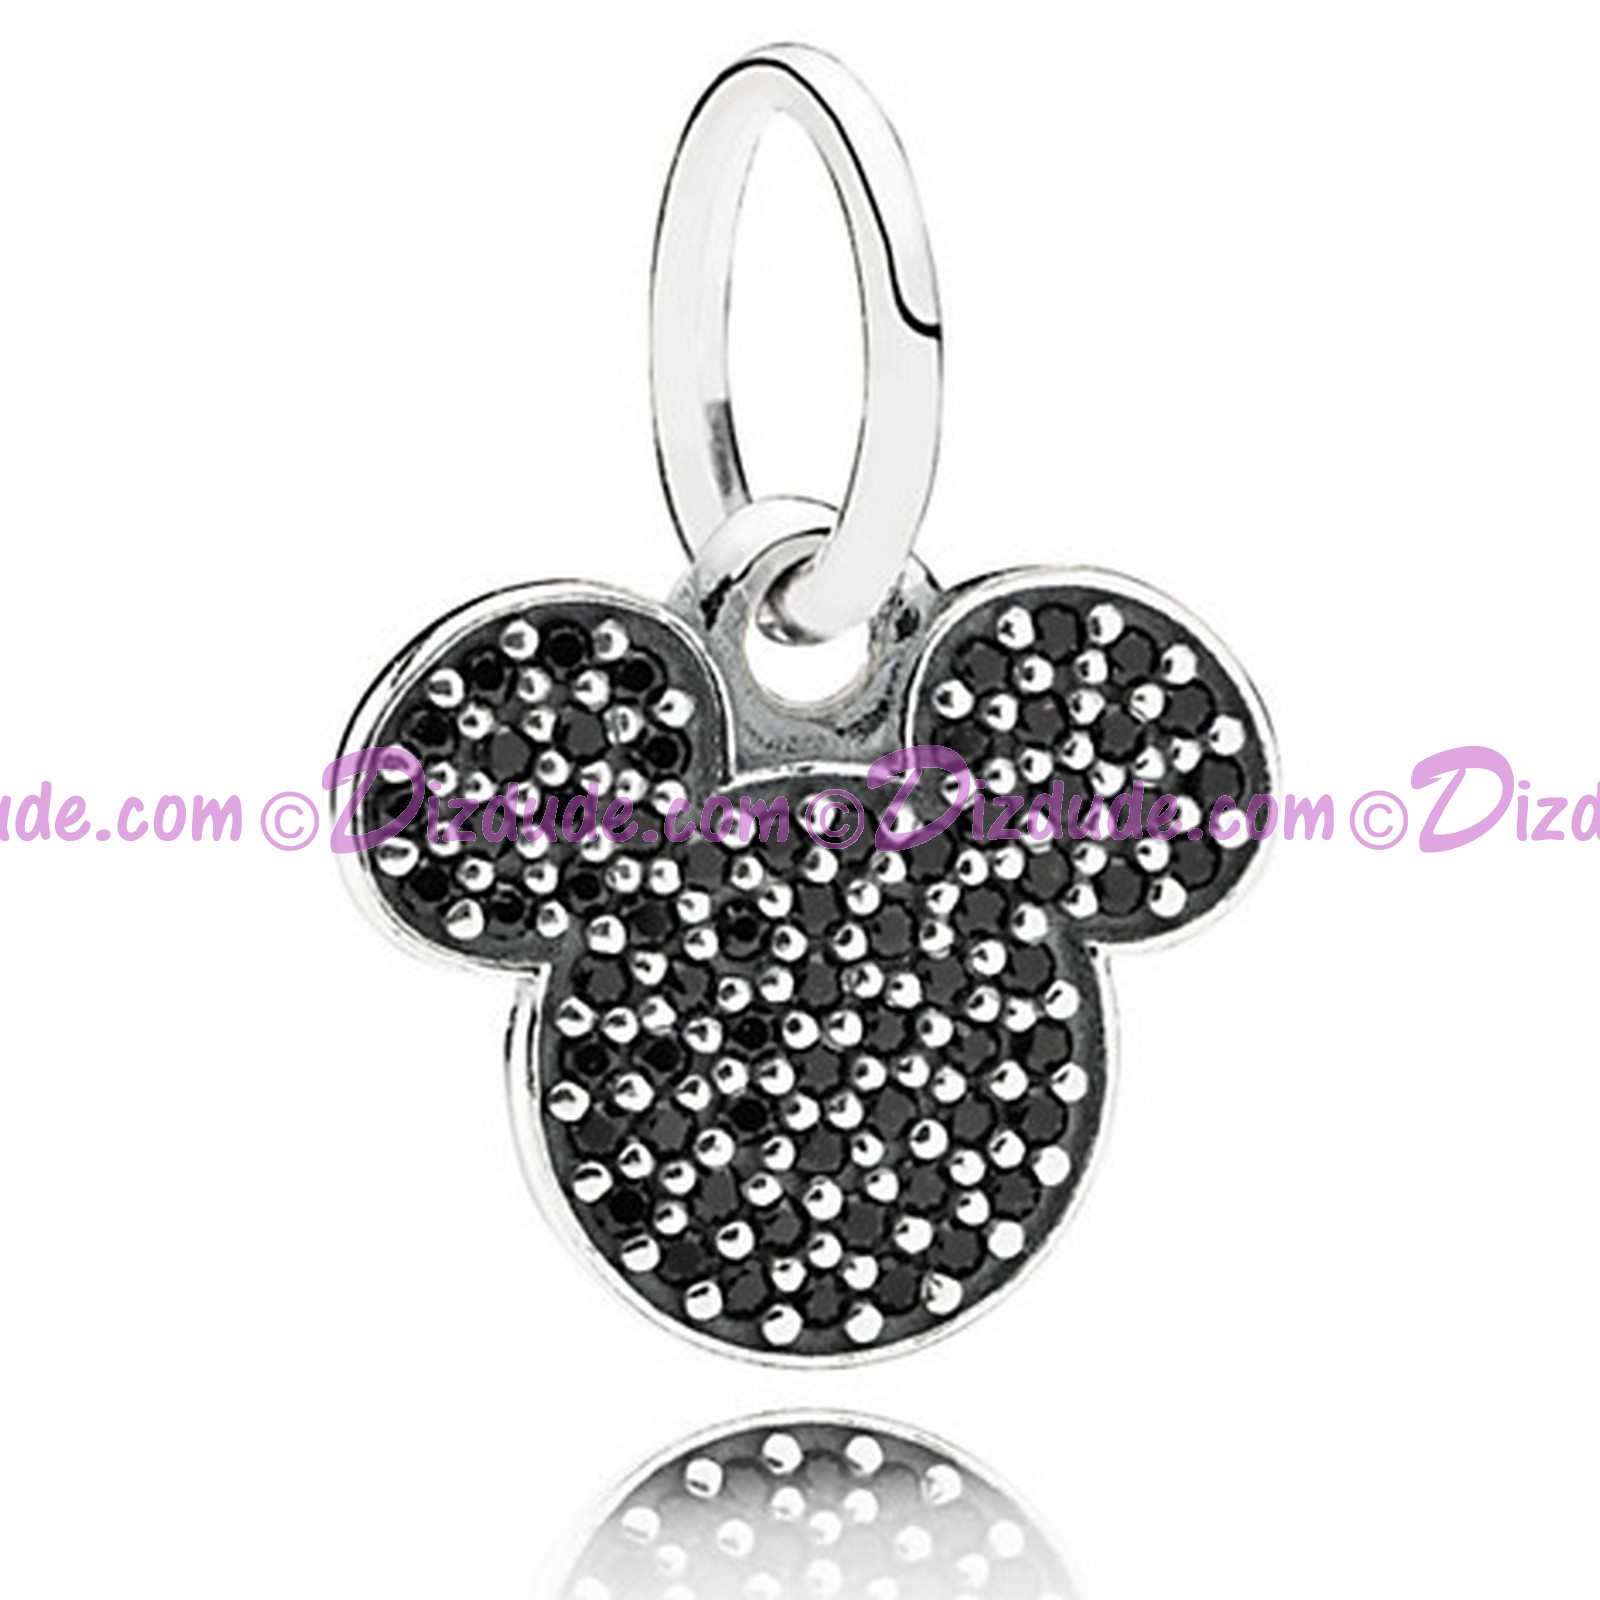 """(SOLD OUT) Disney Pandora """"Sparkling Mickey Icon"""" Sterling Silver Charm with 67 Black Crystals"""